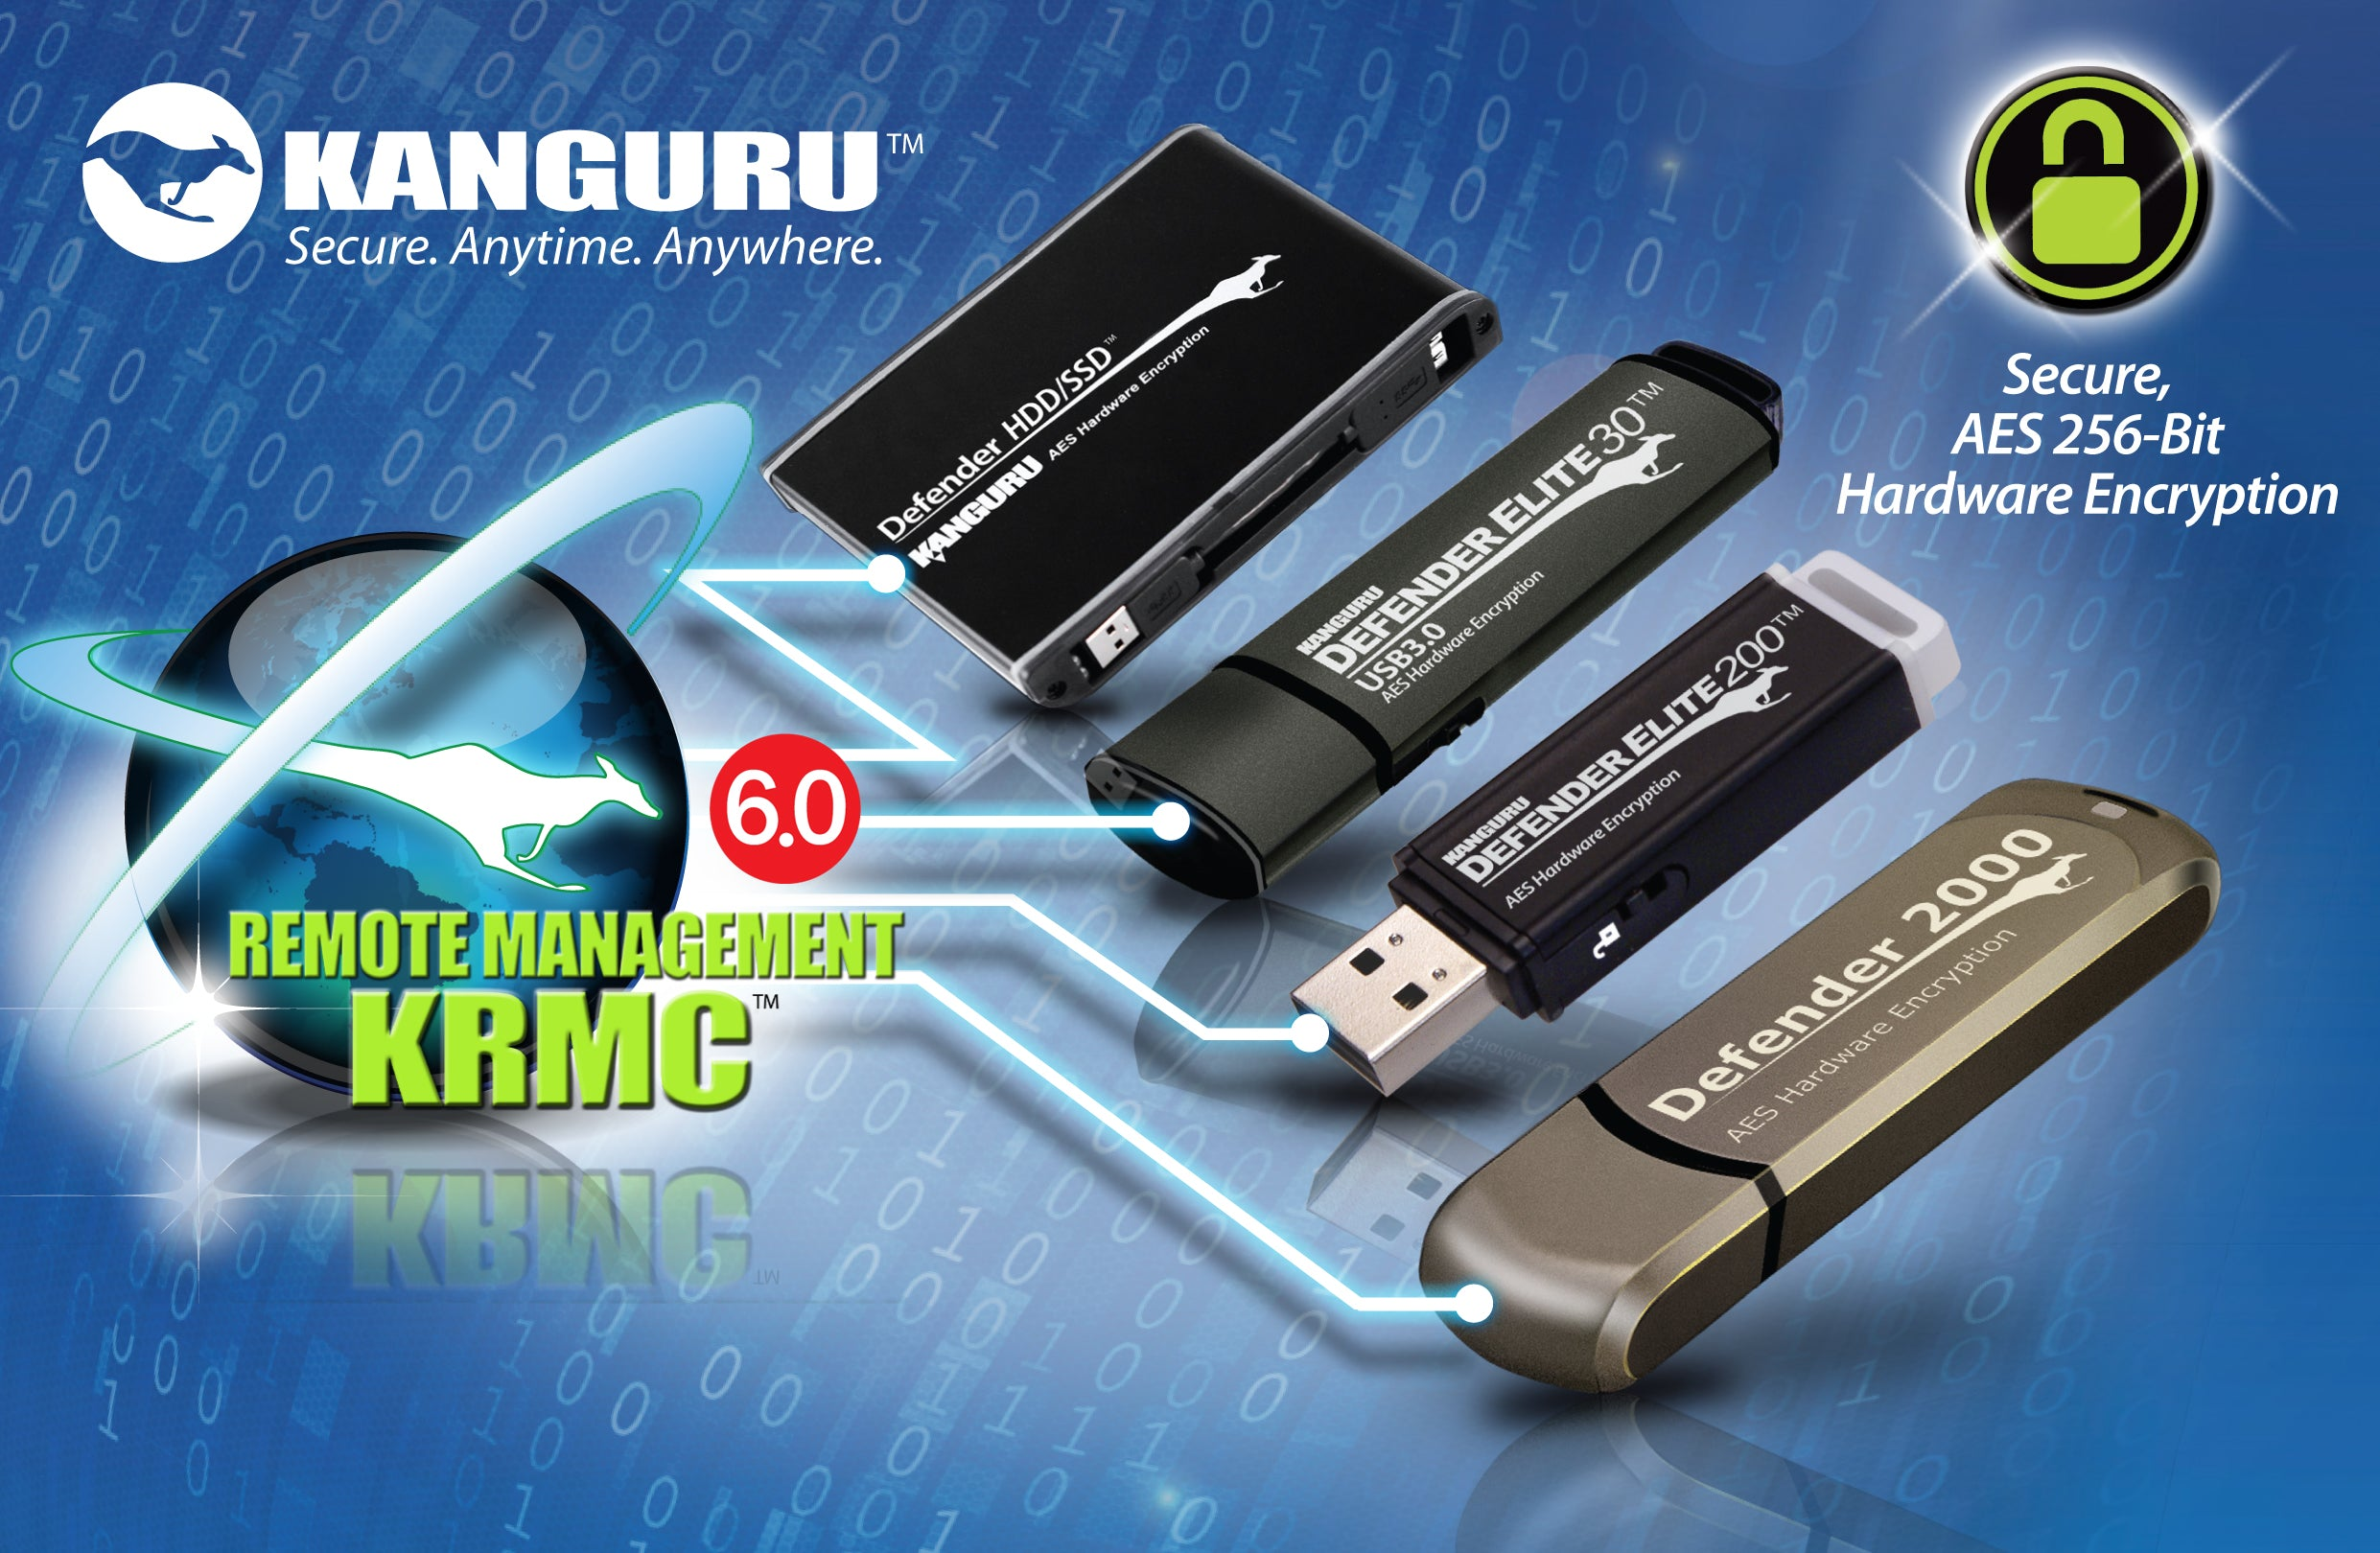 Kanguru Remote Management Console (KRMC)for encrypted USB drives